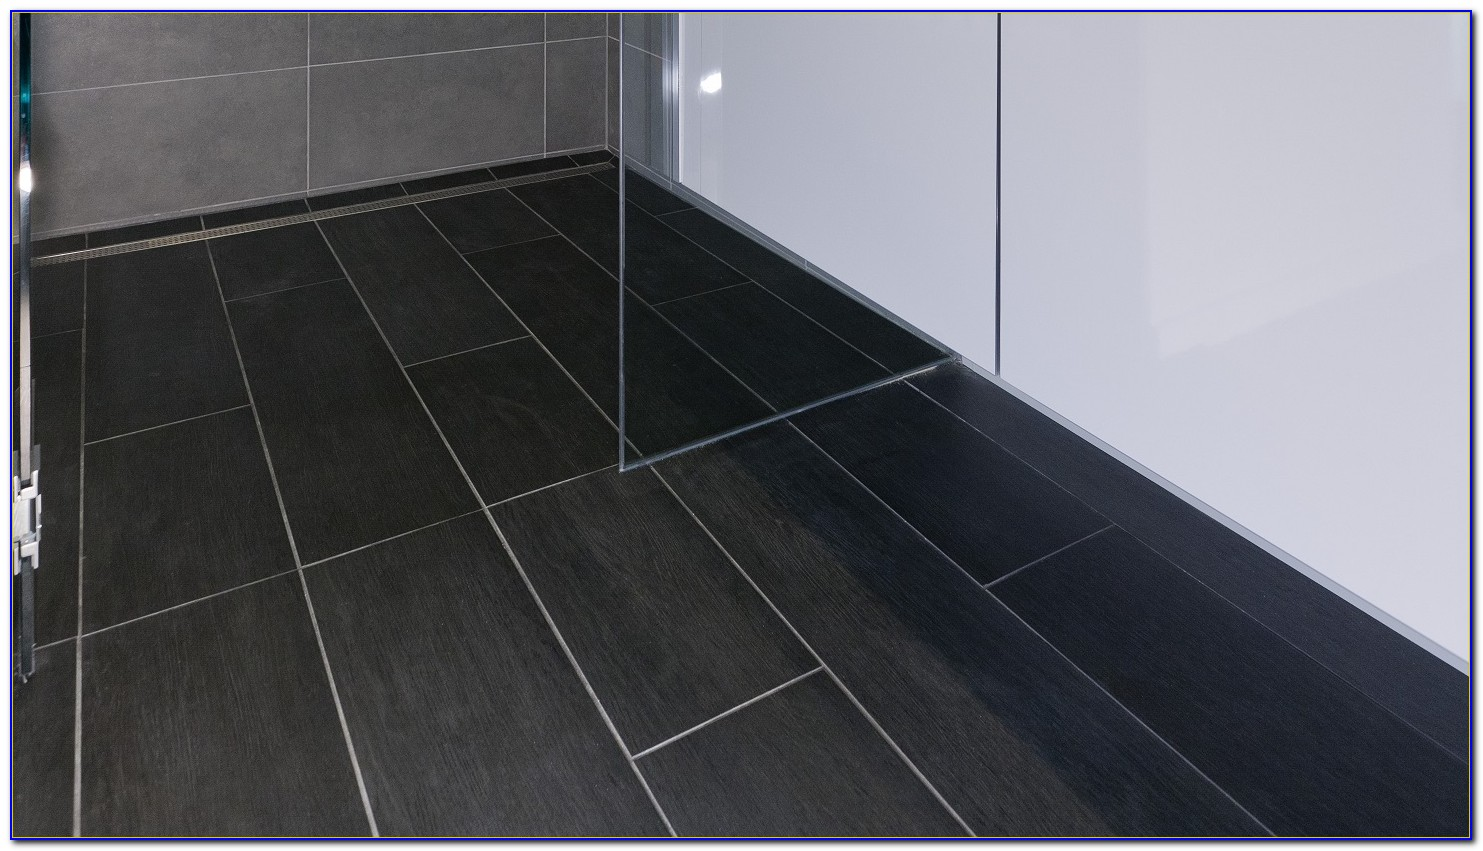 Ceramic Tile Or Vinyl Plank Flooring